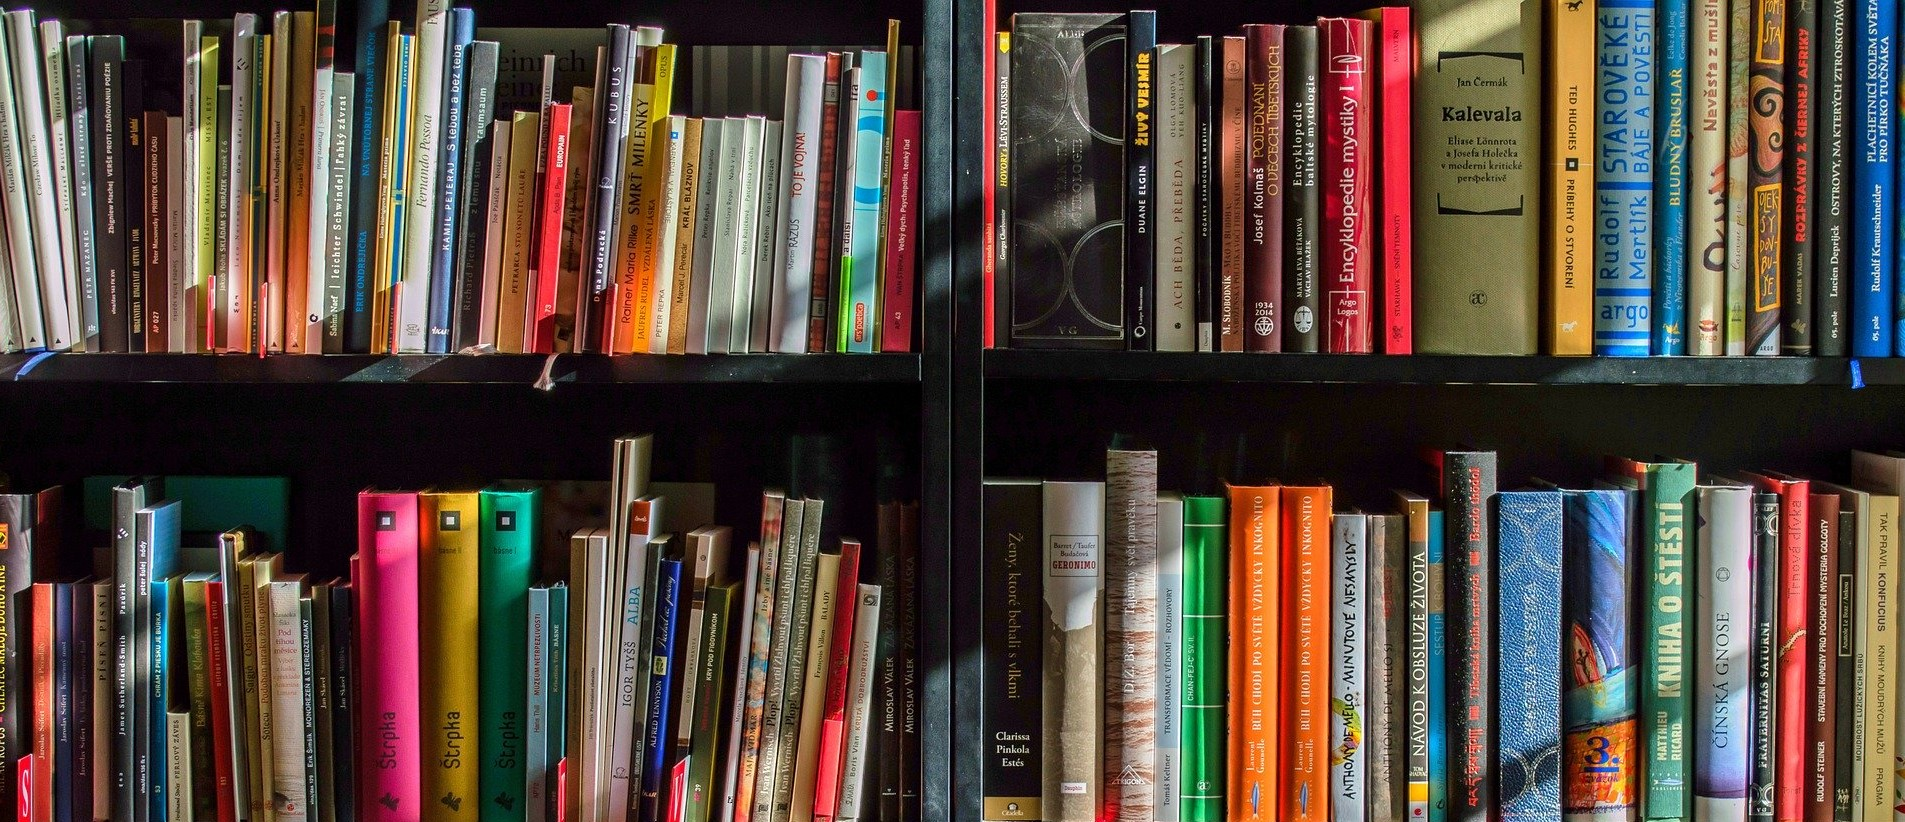 A literature scholar just needs books and isolation!